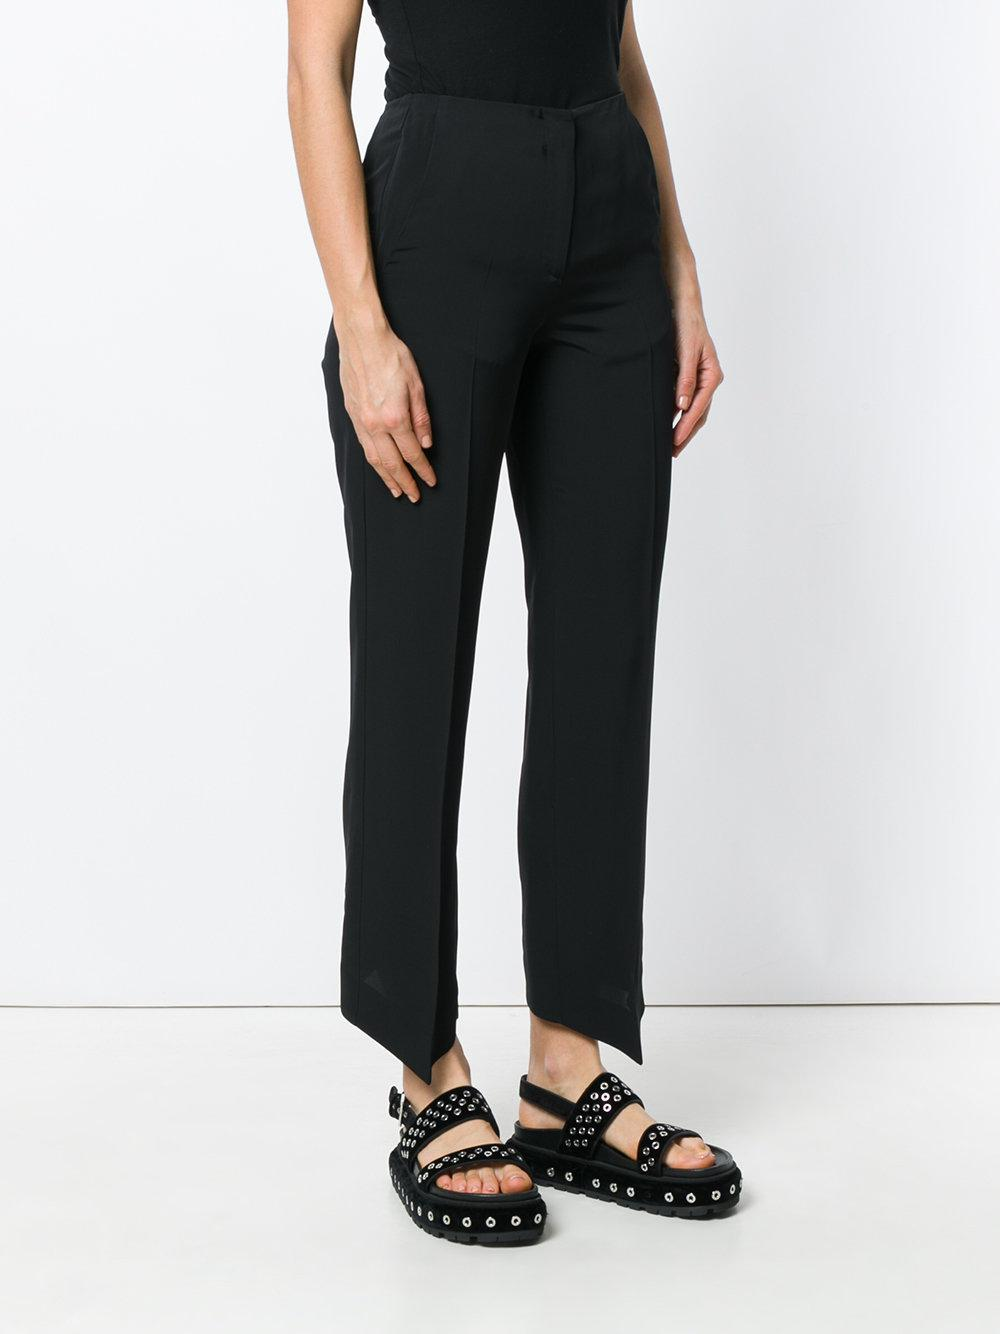 Supply high-waisted trousers - Black Maison Martin Margiela Buy Cheap Popular Discount Extremely 6hJZCjq